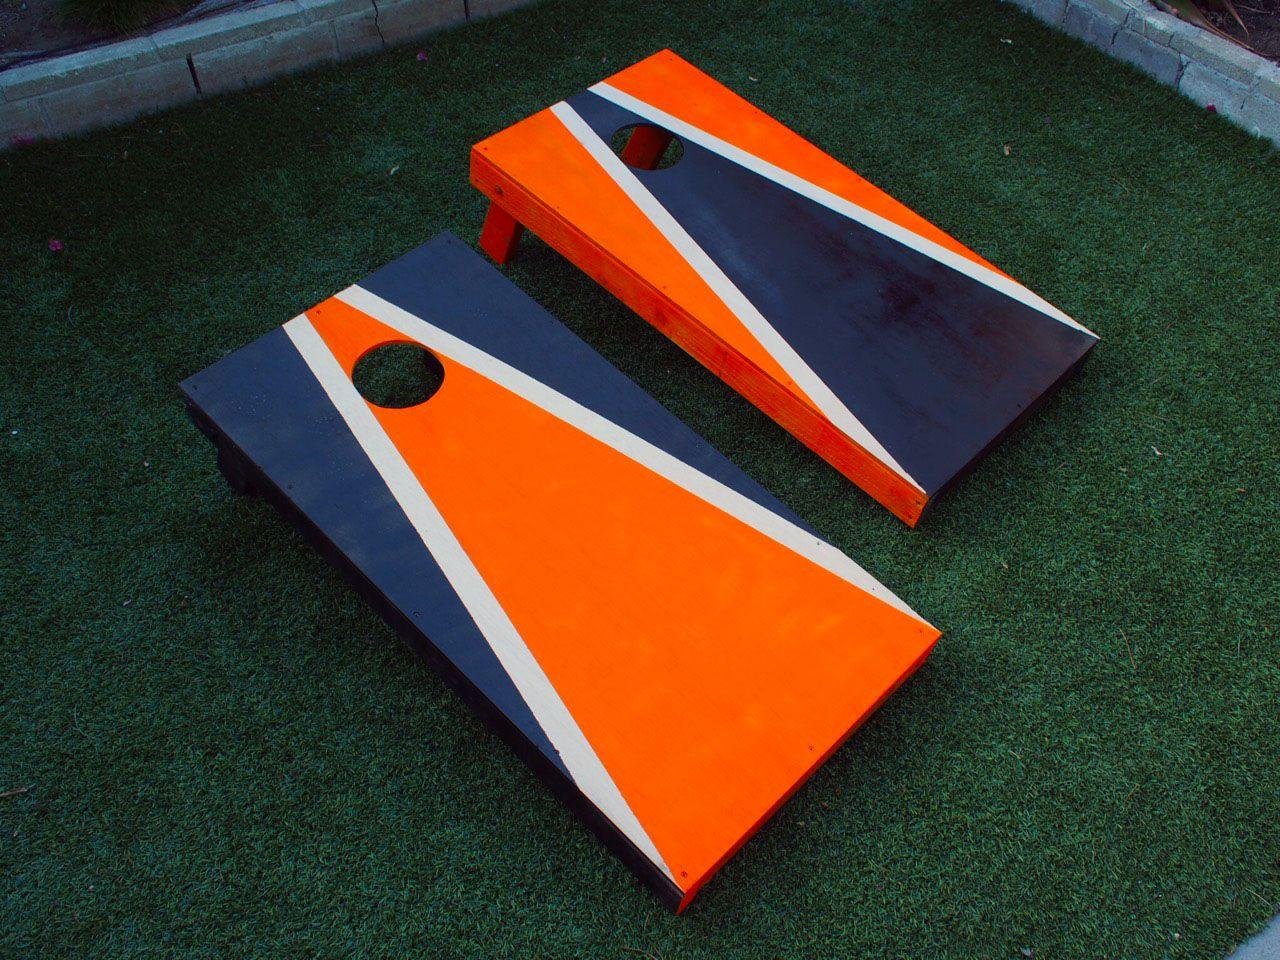 "<p>Nothing livens up a summer BBQ more than a little competition. A bean bag toss game–known as cornhole in some parts-welcomes players of all ages and abilities, who can compete on a level playing field. You can enjoy a couple of round without breaking a sweat, or even putting your drink down. </p><p>To play, you simply need a set of eight corn filled <a href=""http://www.amazon.com/Tailgate360-Corn-Hole-Bean-Toss/dp/B00AK6QTRM/ref=sr_1_6?ie=UTF8&qid=1463969600&sr=8-6&keywords=bean+bags"">bean bags</a> and two boards. The boards can be built in an afternoon, and can be decorated with the colors of your favorite sports team or a design of your own choosing. Here's how.</p>"